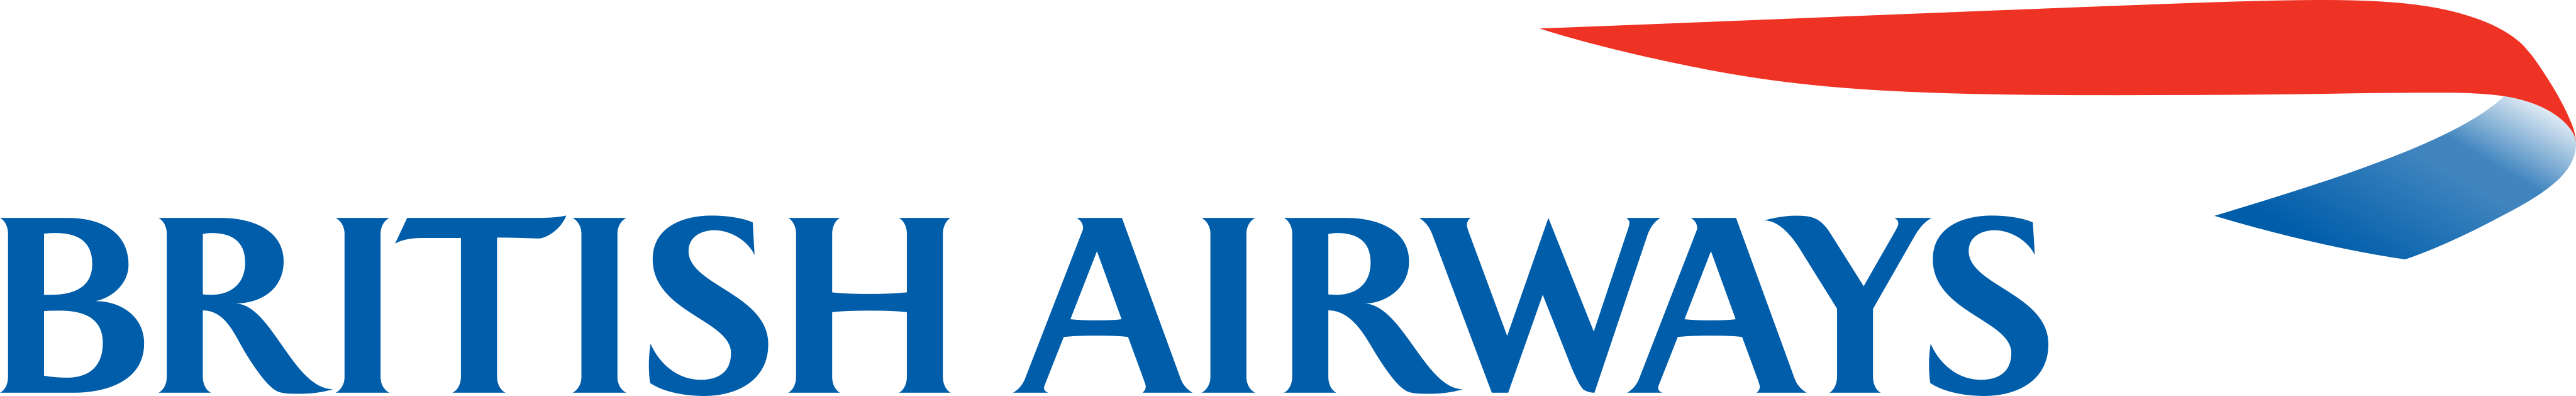 british airways logo - British Airways Logo